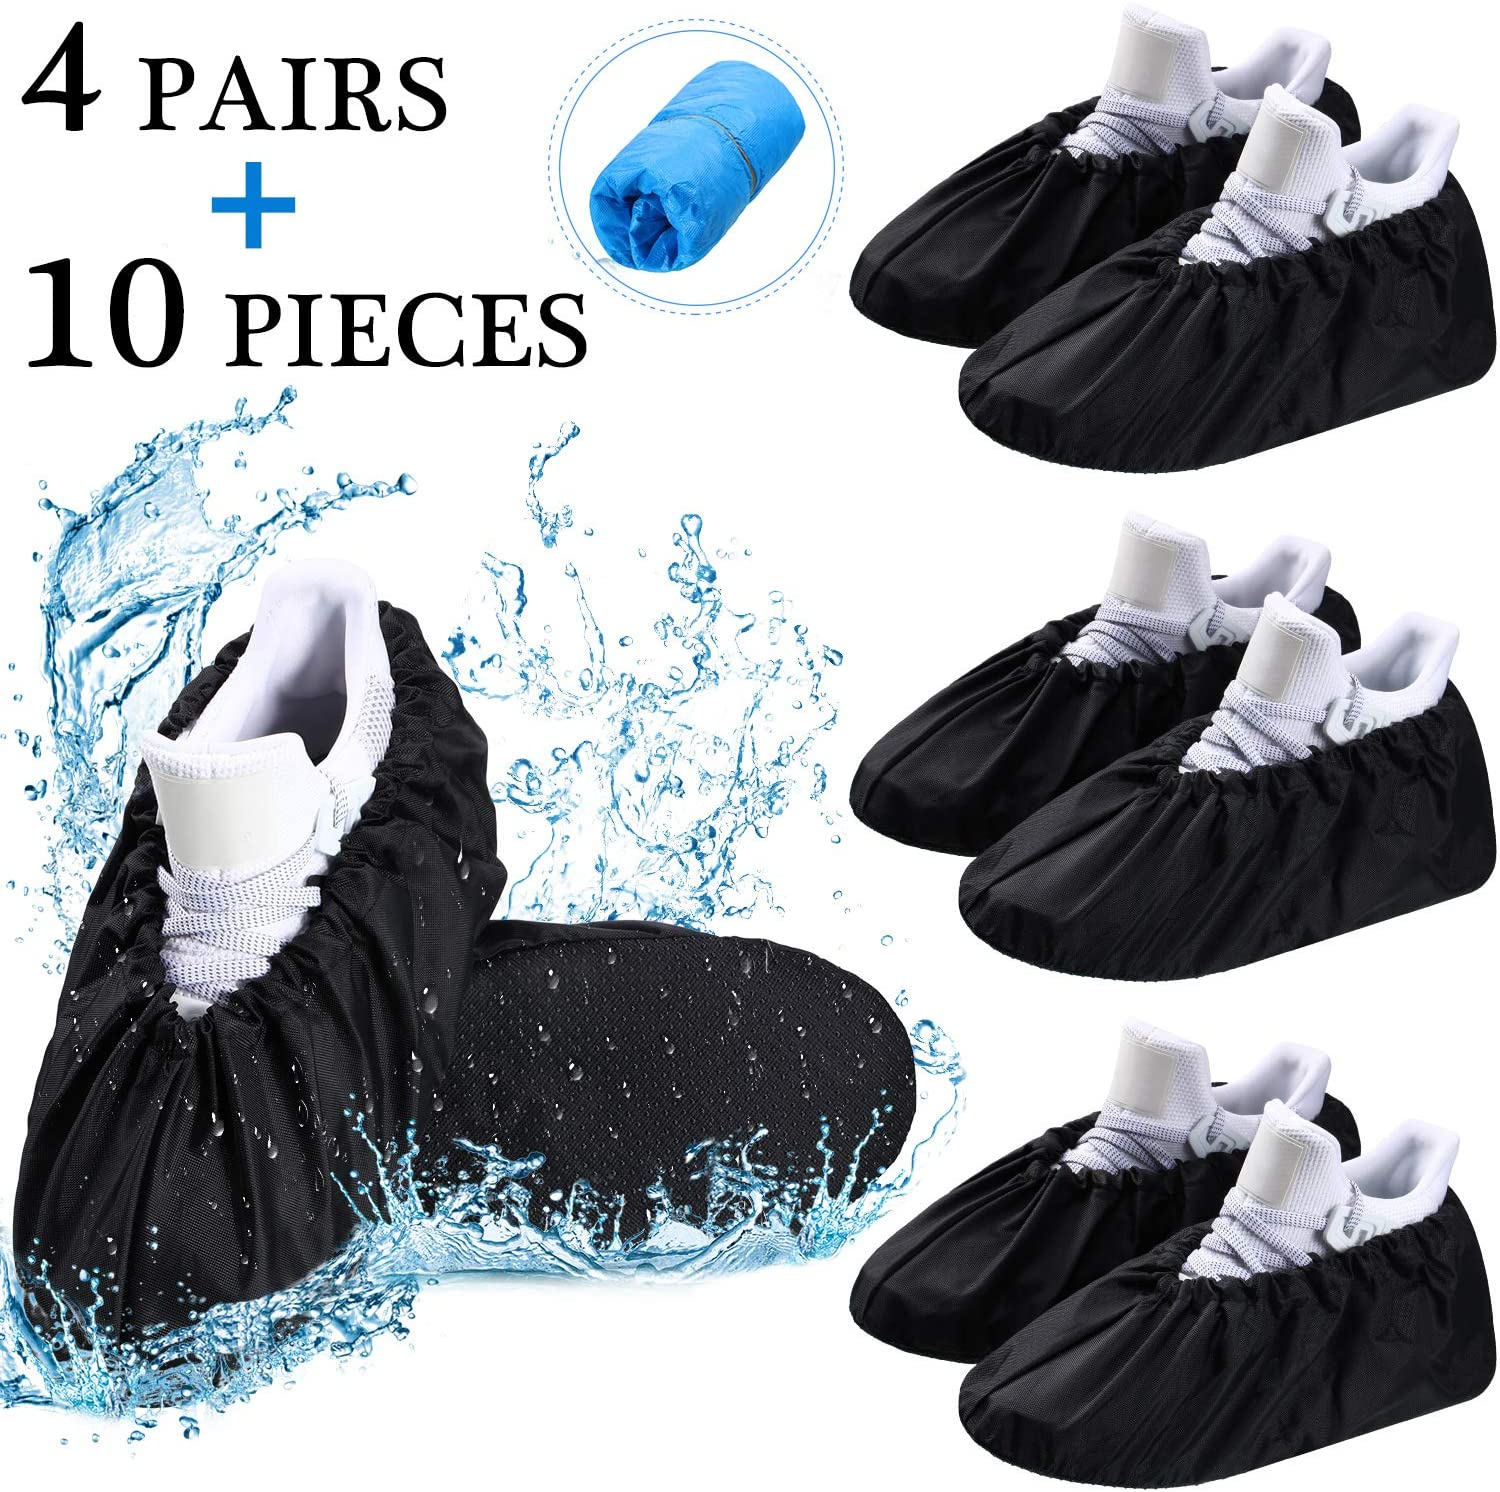 SATINIOR 2 Pairs Waterproof Silicone Shoe Cover Reusable Non-Slip Overshoe for Outdoor Rain Using